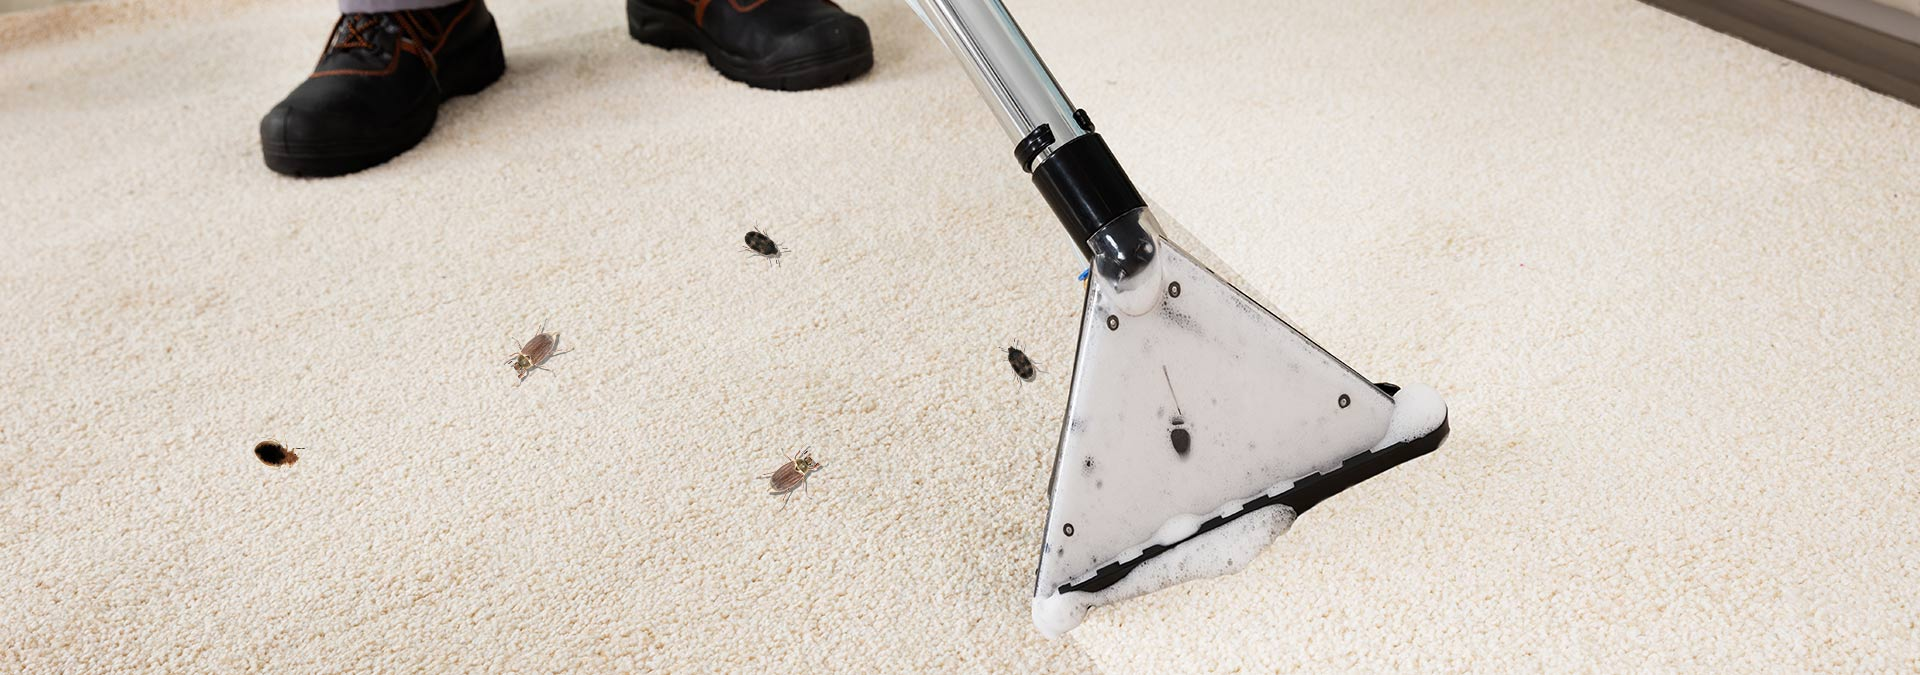 Carpet Beetle Elimination Nyc Steam Cleaning